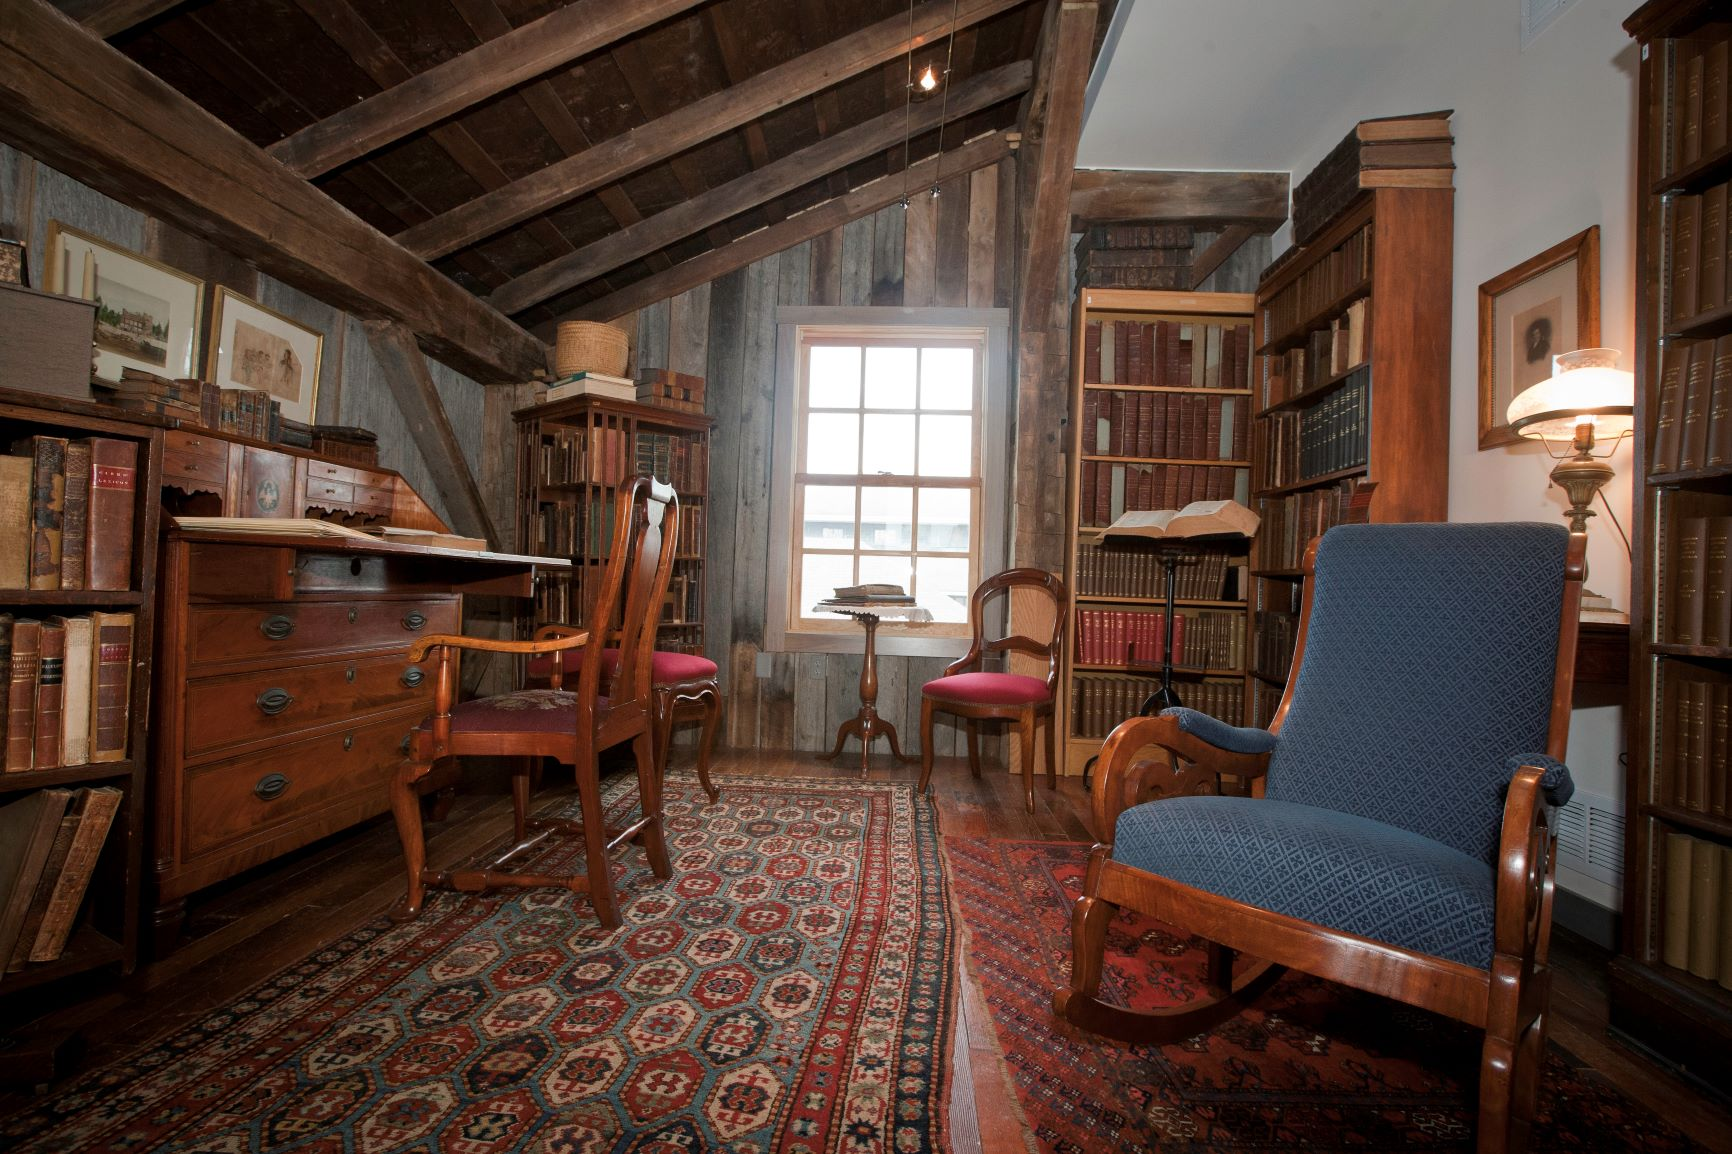 historic books and furniture